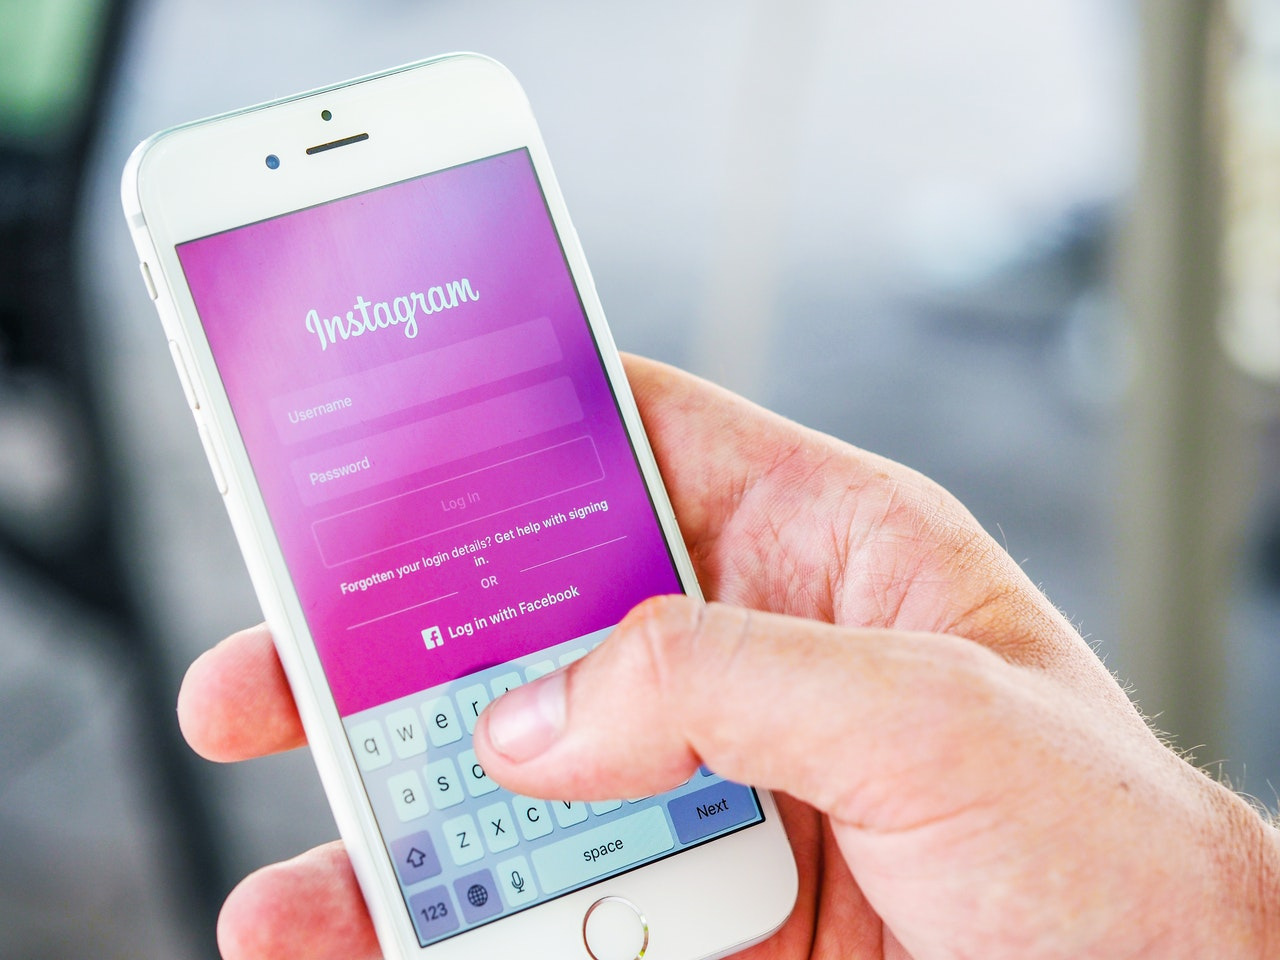 SEO tips blog: Posting on Instagram can help you promote yourself